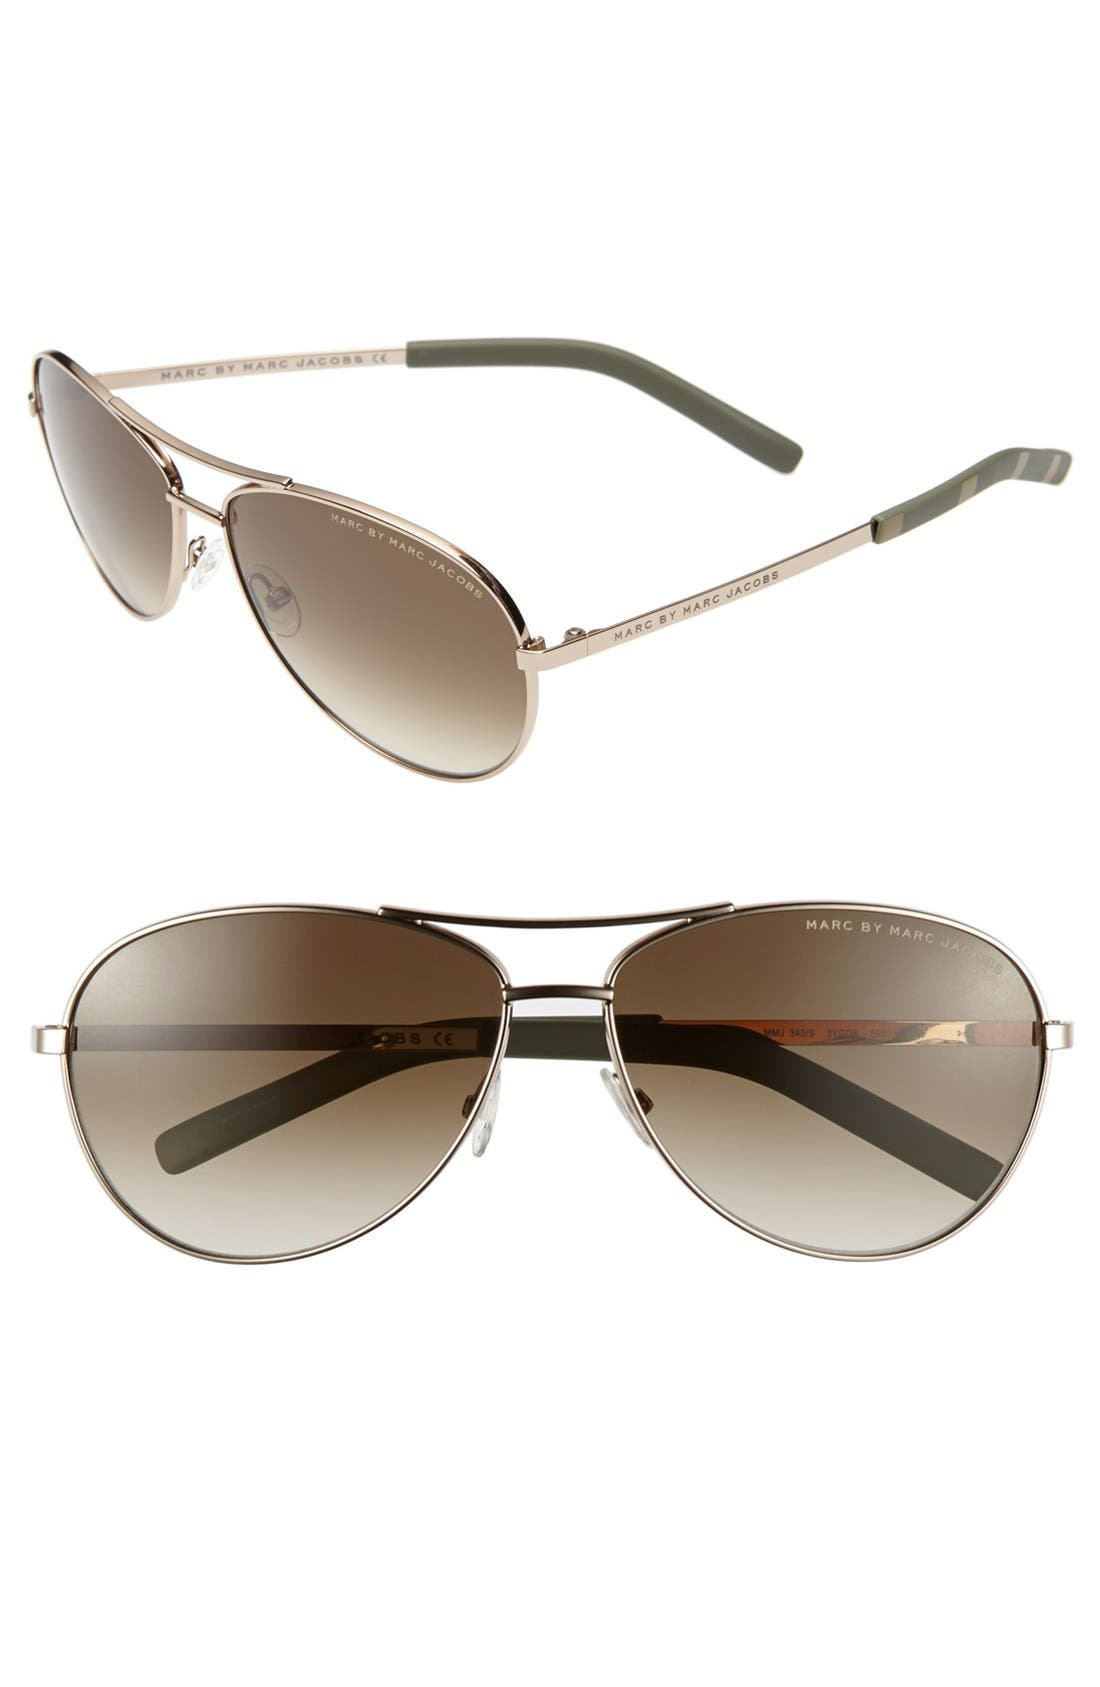 Alternate Image 1 Selected - MARC BY MARC JACOBS 'Angelina' 61mm Sunglasses